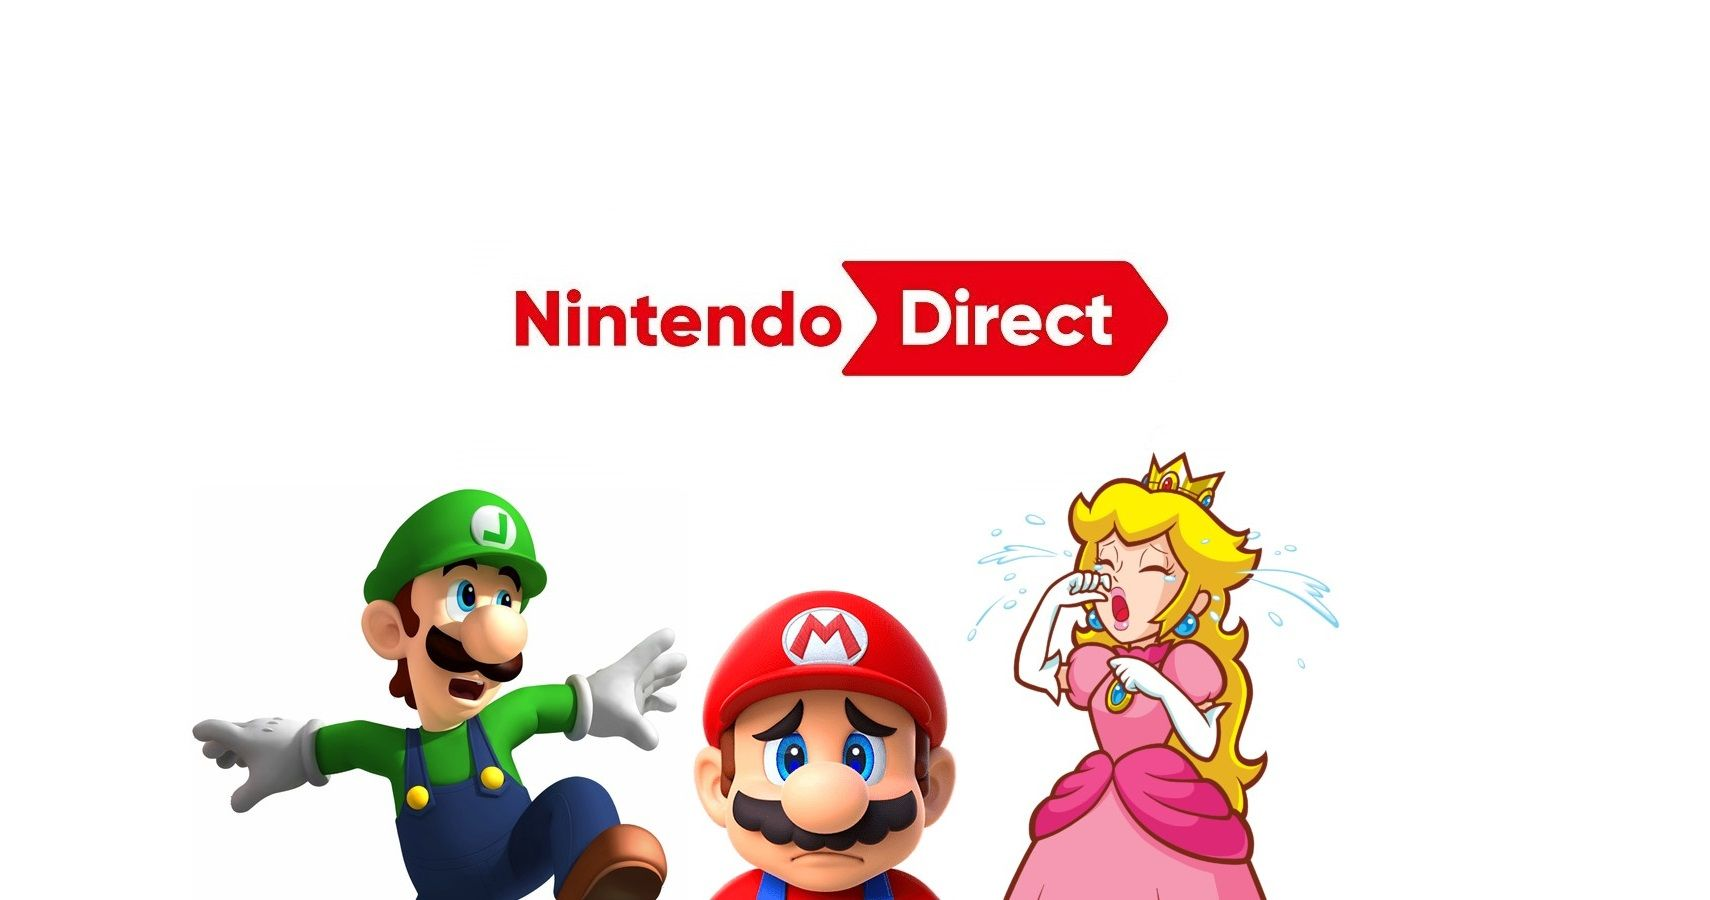 That Nintendo Direct Announcement Is Fake, Please Stop Sharing It